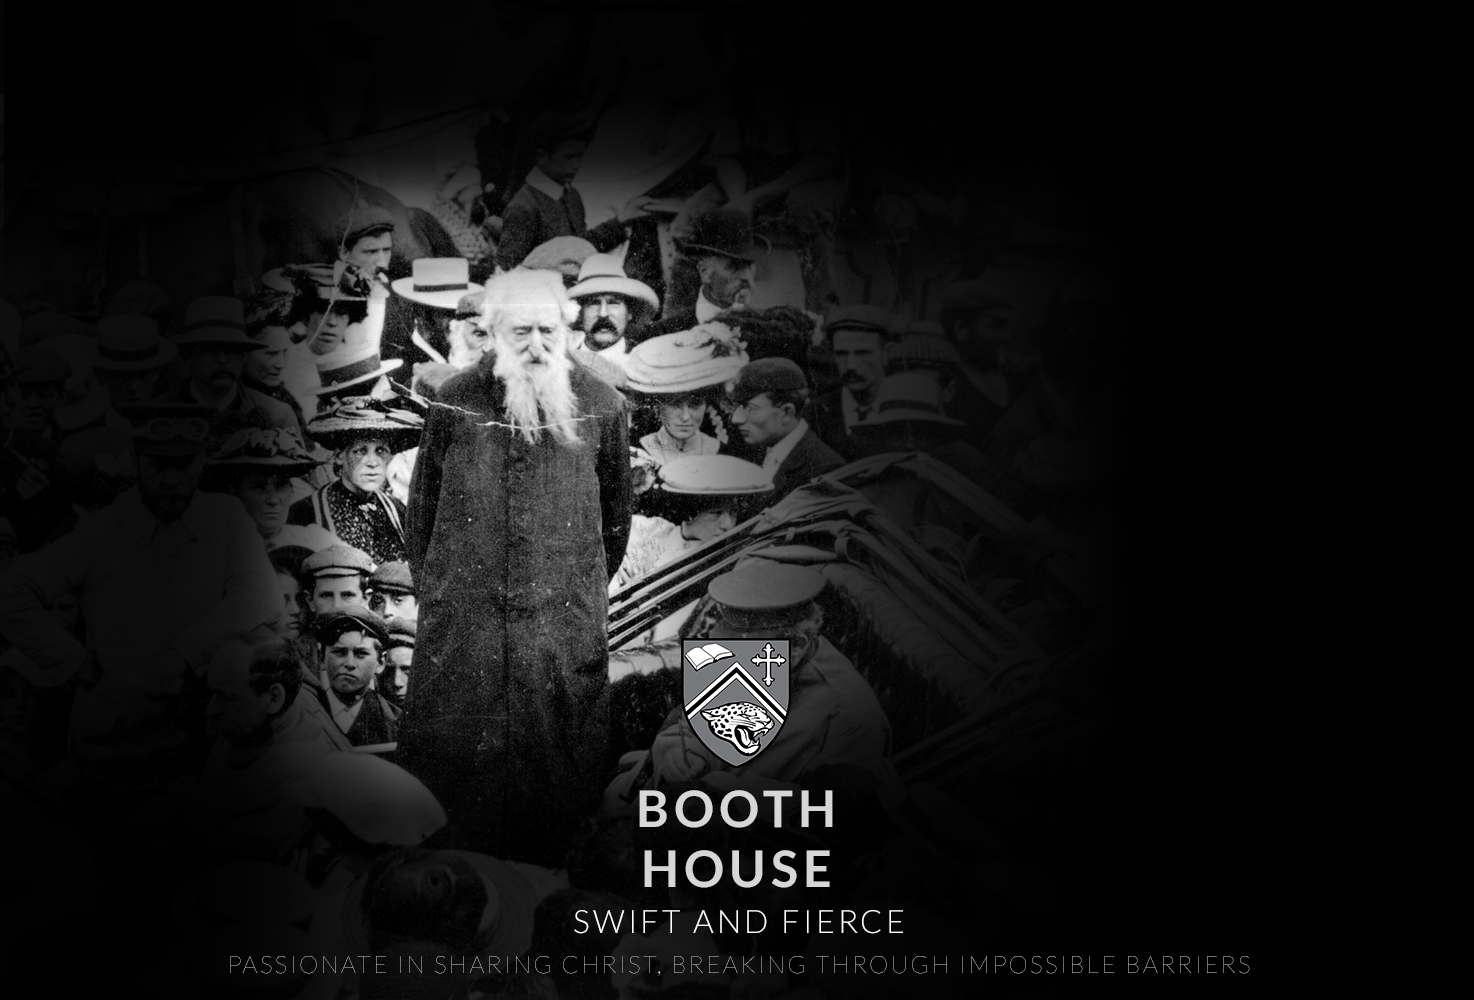 BoothHouse_AW1_Reversed.jpg?mtime=20200820135007#asset:5492